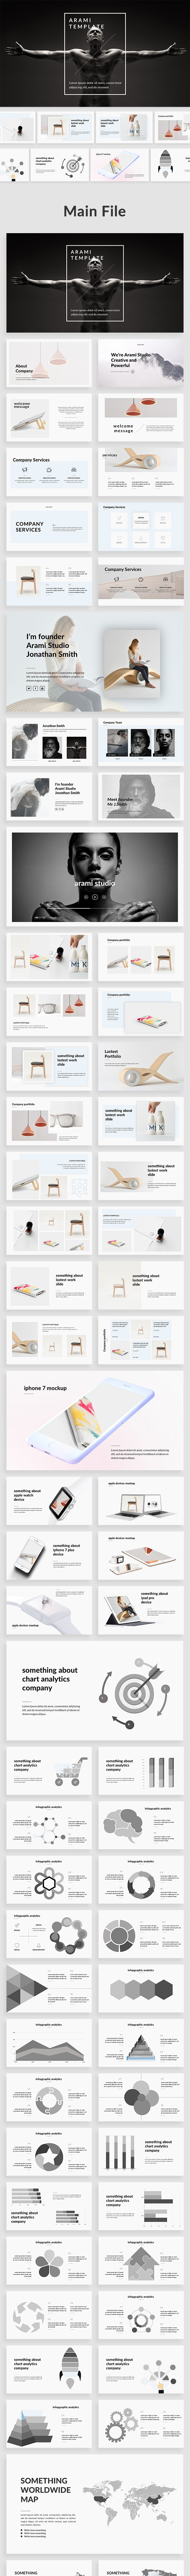 Arami - Creative Google Slide Template - Google Slides Presentation Templates